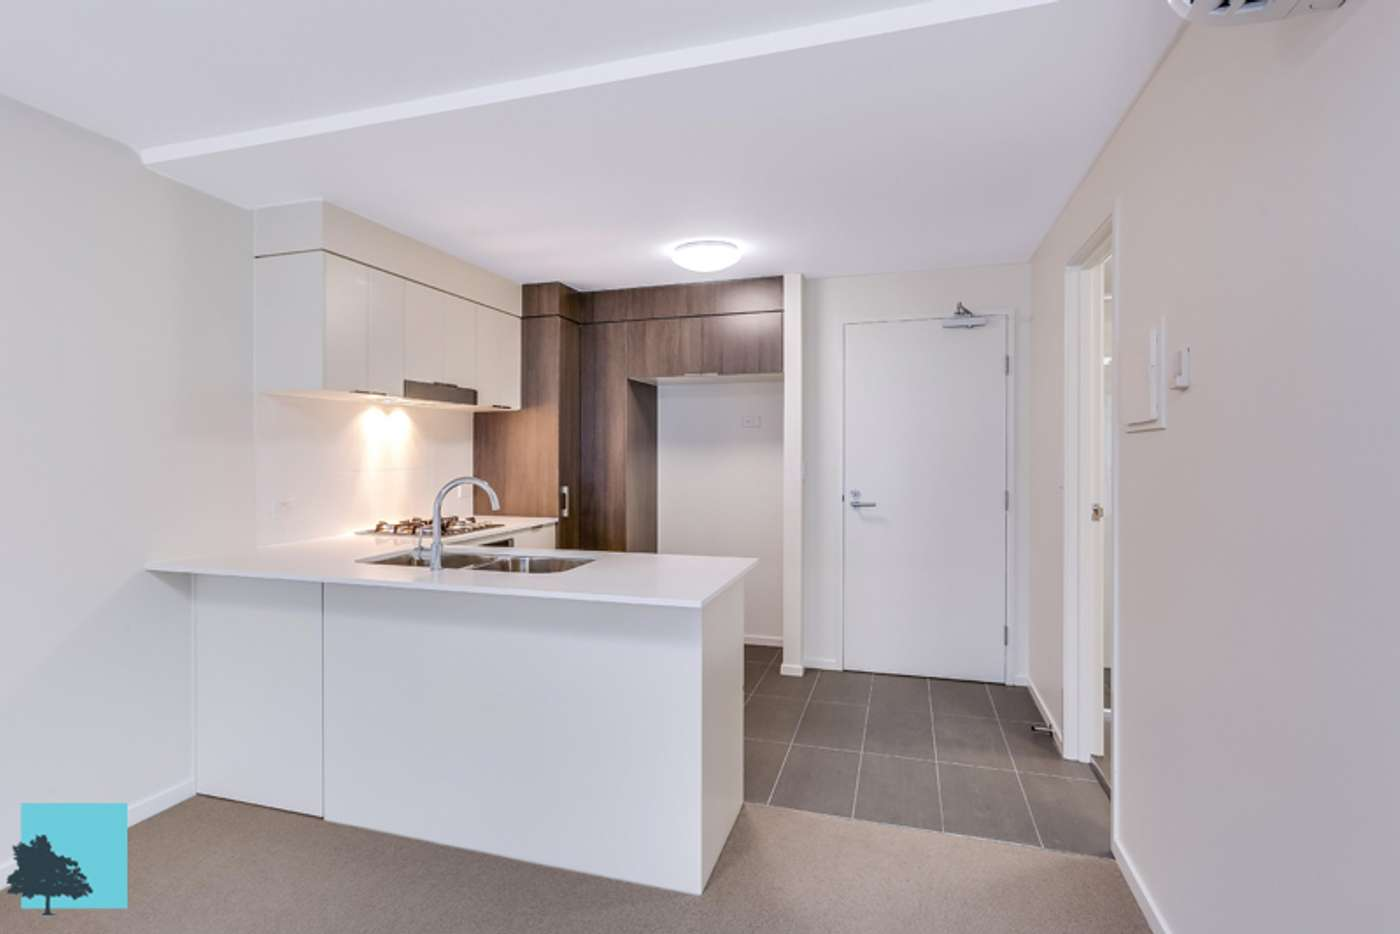 Main view of Homely unit listing, 2505/27 Charlotte Street, Chermside QLD 4032